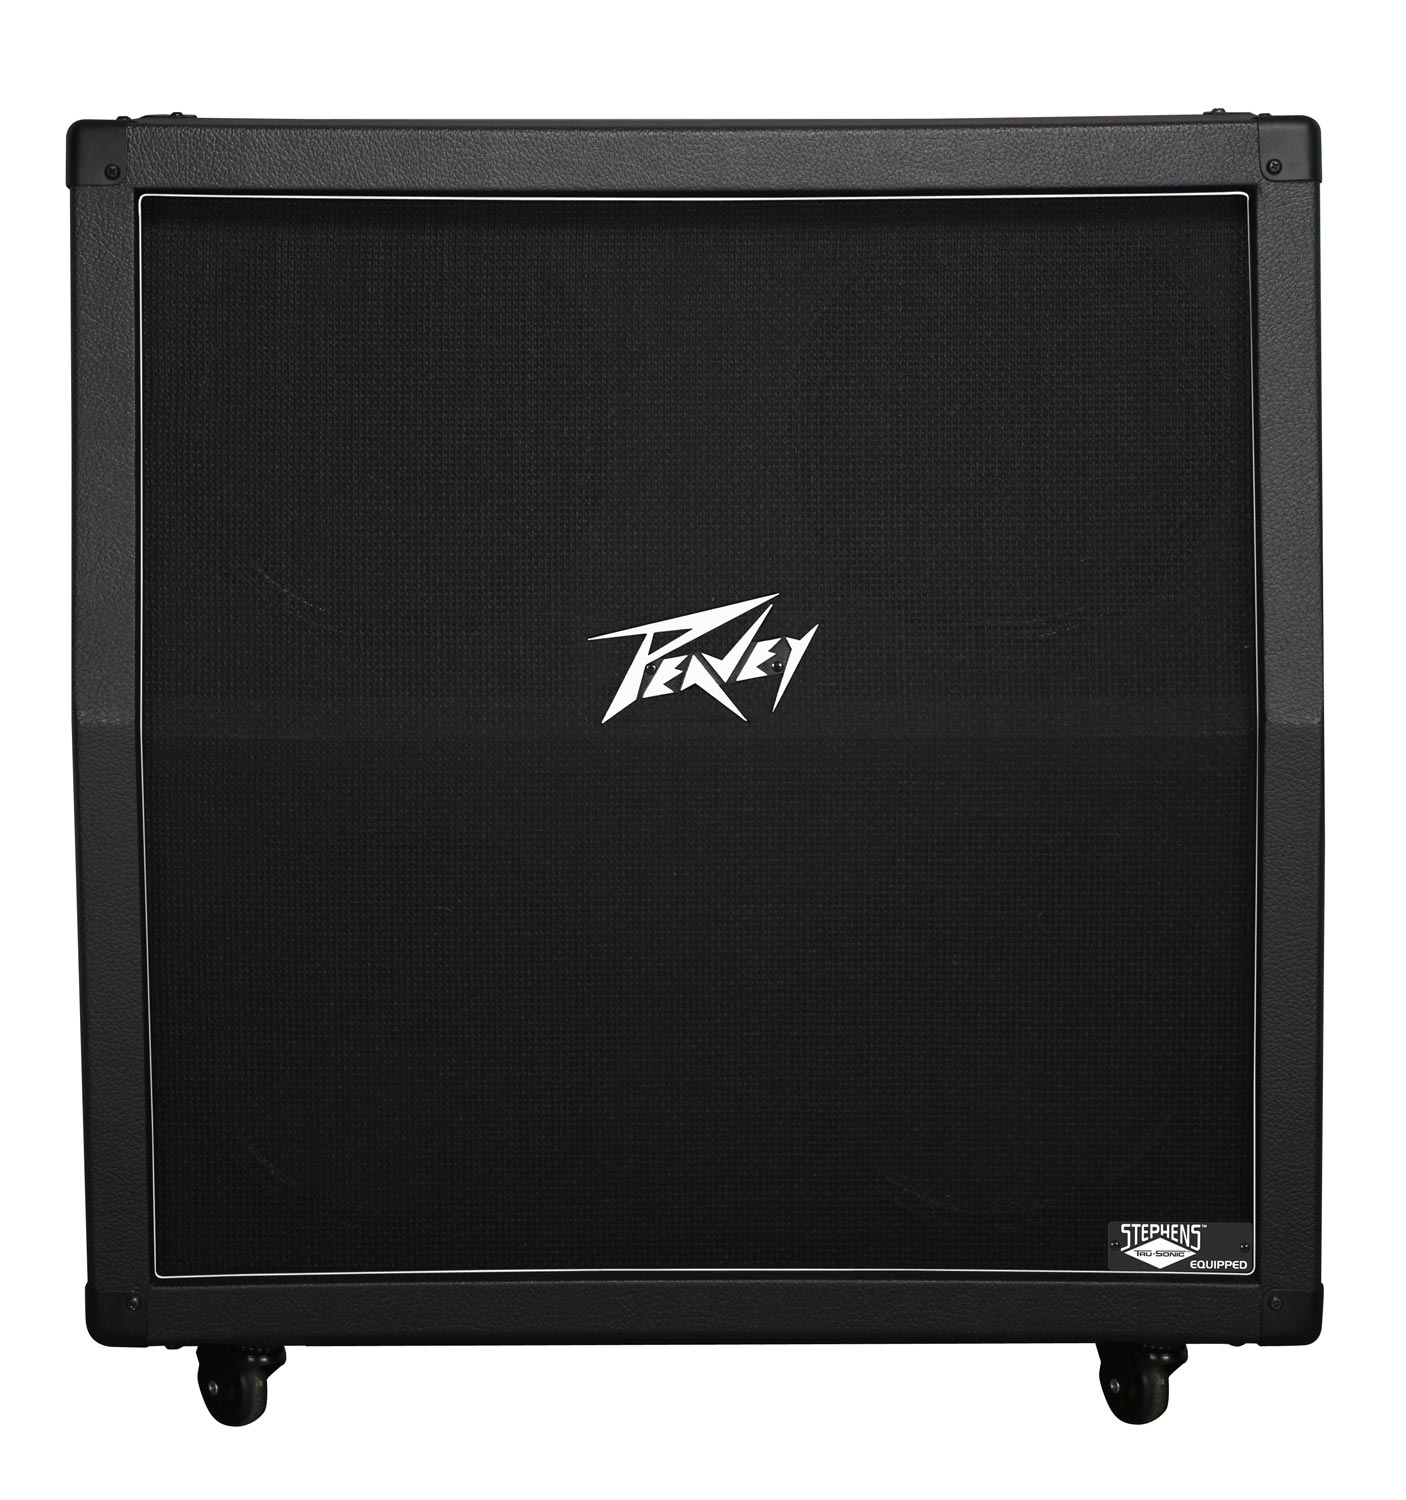 peavey 430a 412 electric guitar slant cabinet 4 12 speakers 6505 amp head pev16 package83. Black Bedroom Furniture Sets. Home Design Ideas